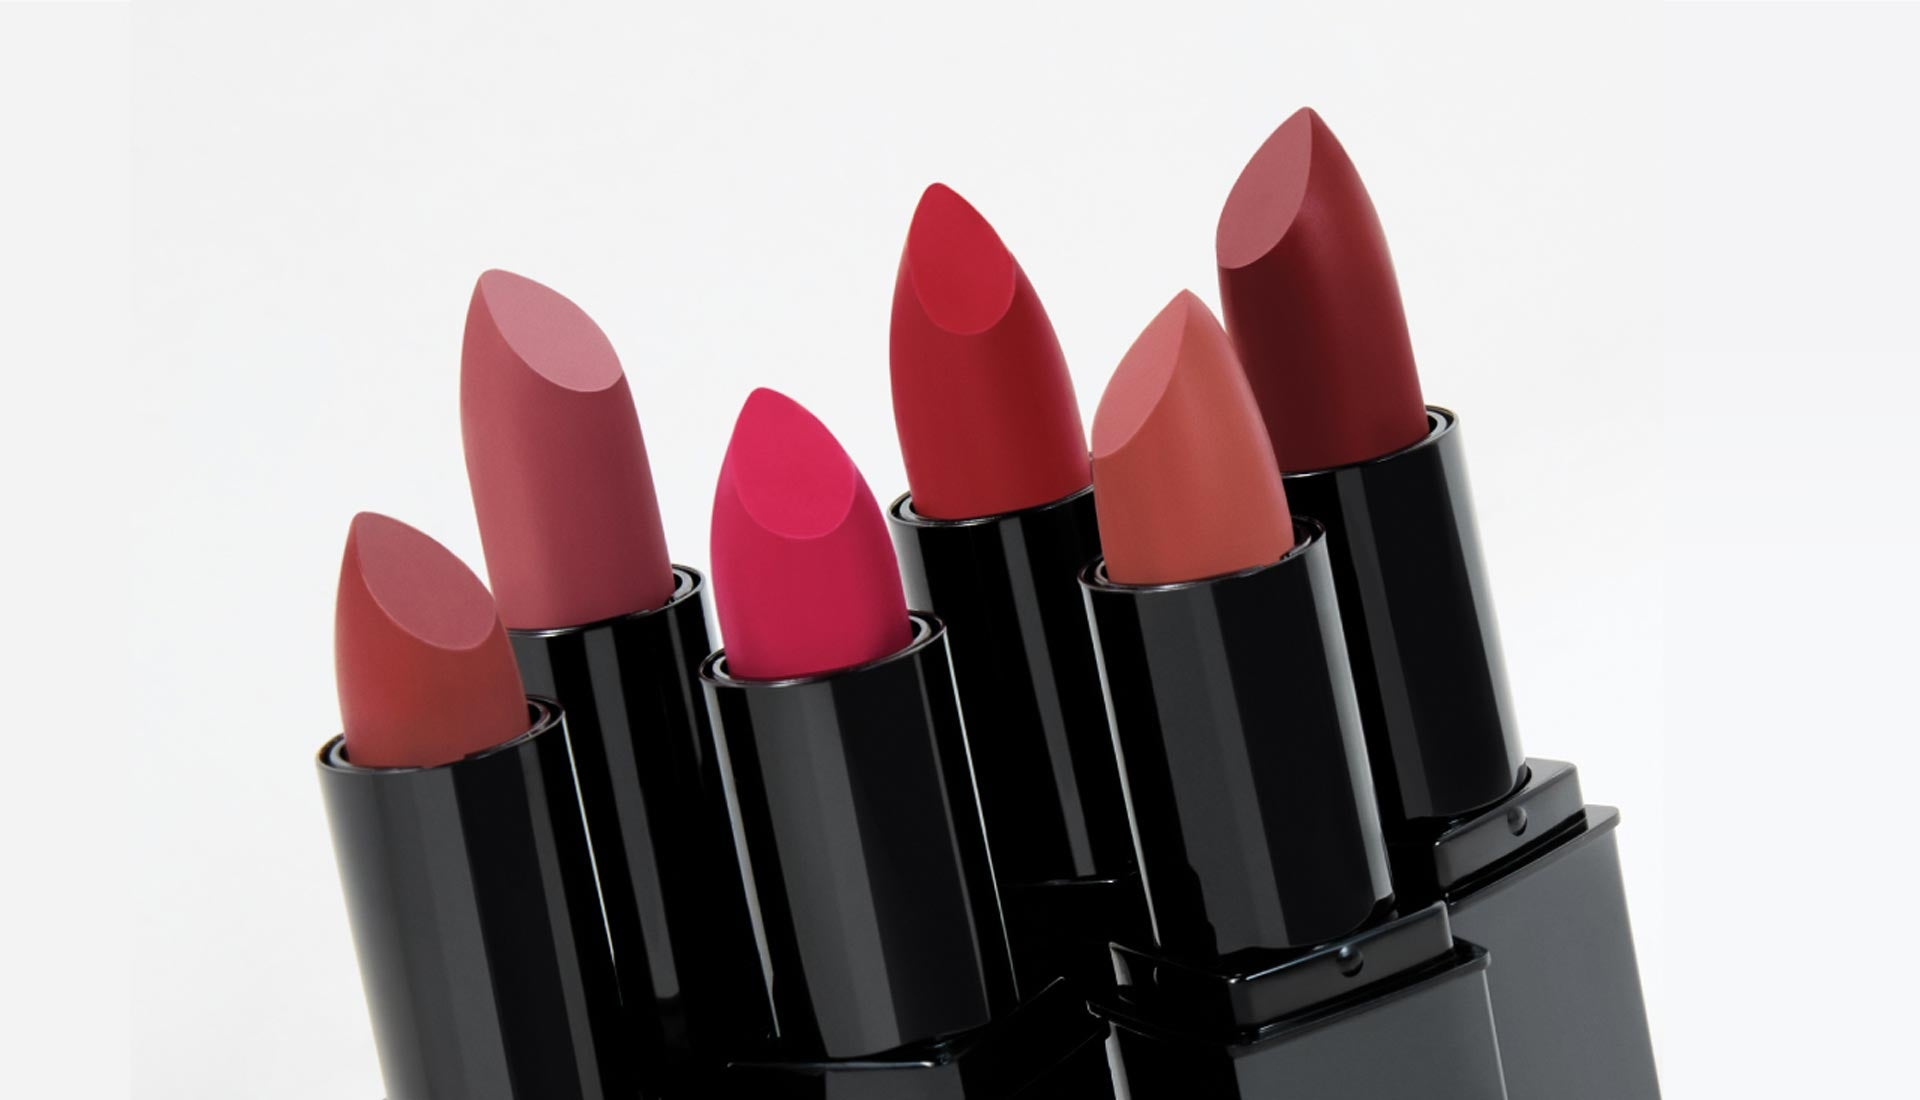 Lipstick Shades For Women By Studiowest